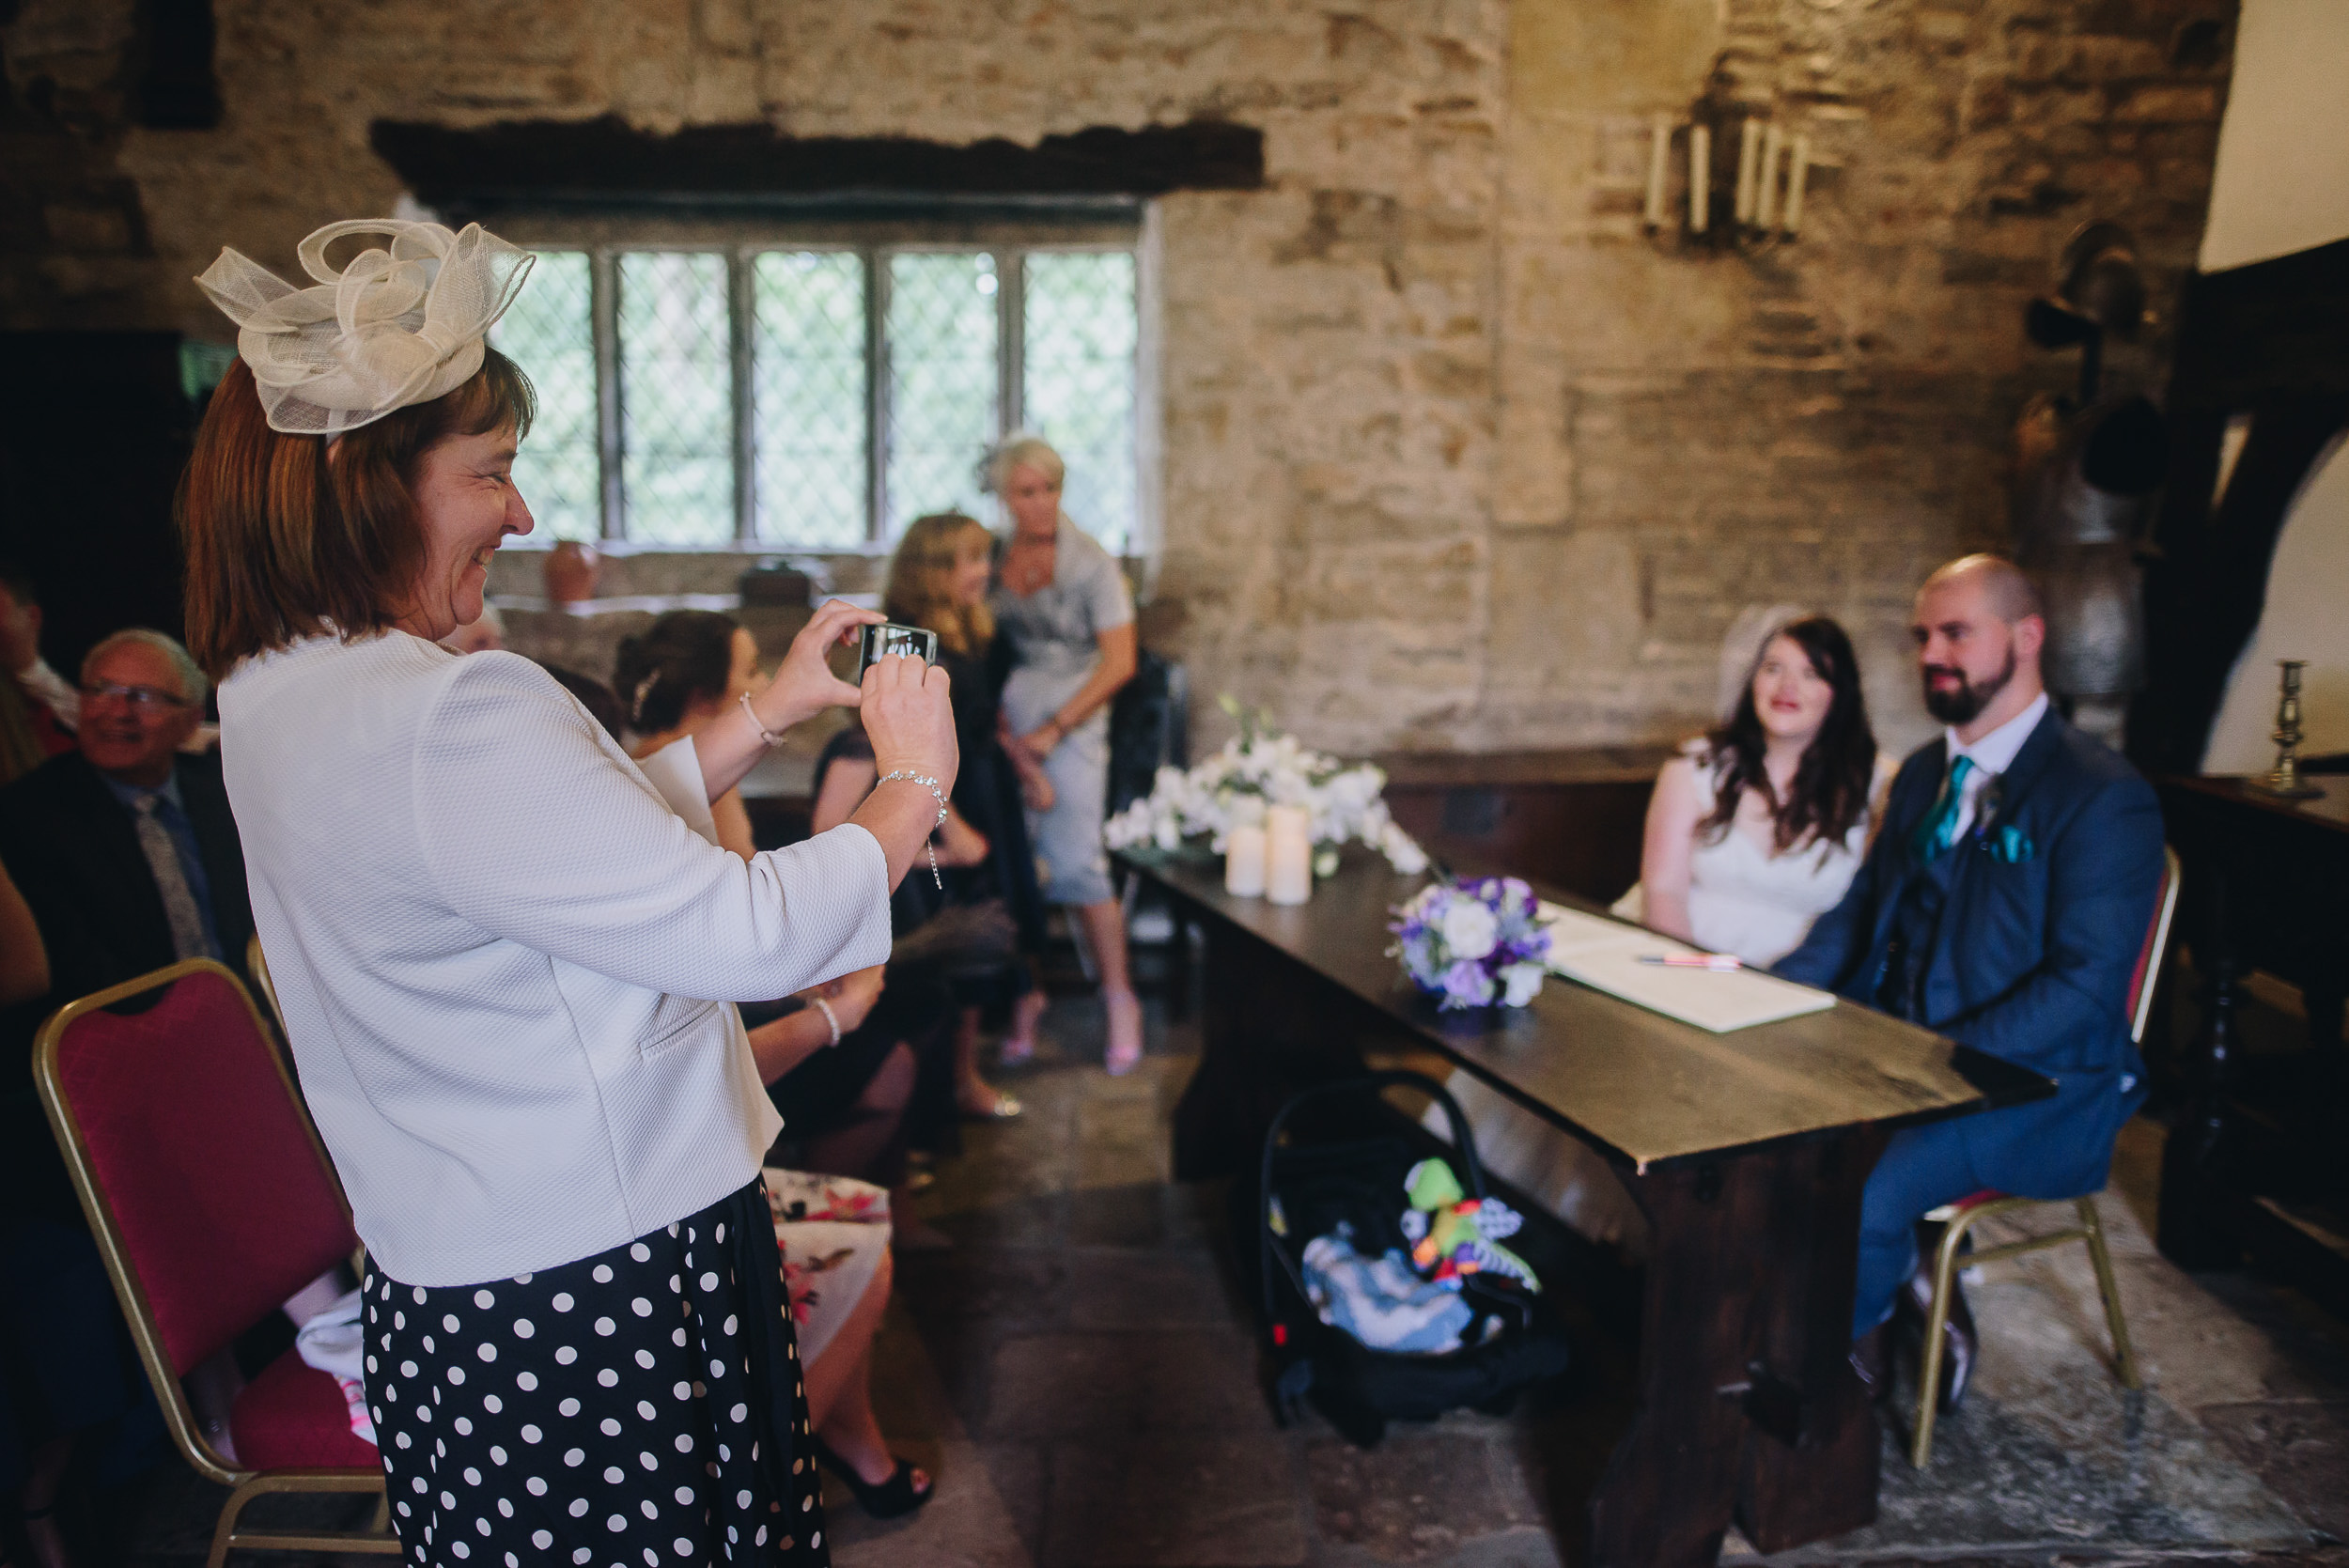 Smithills-hall-wedding-manchester-the-barlow-edgworth-hadfield-27.jpg